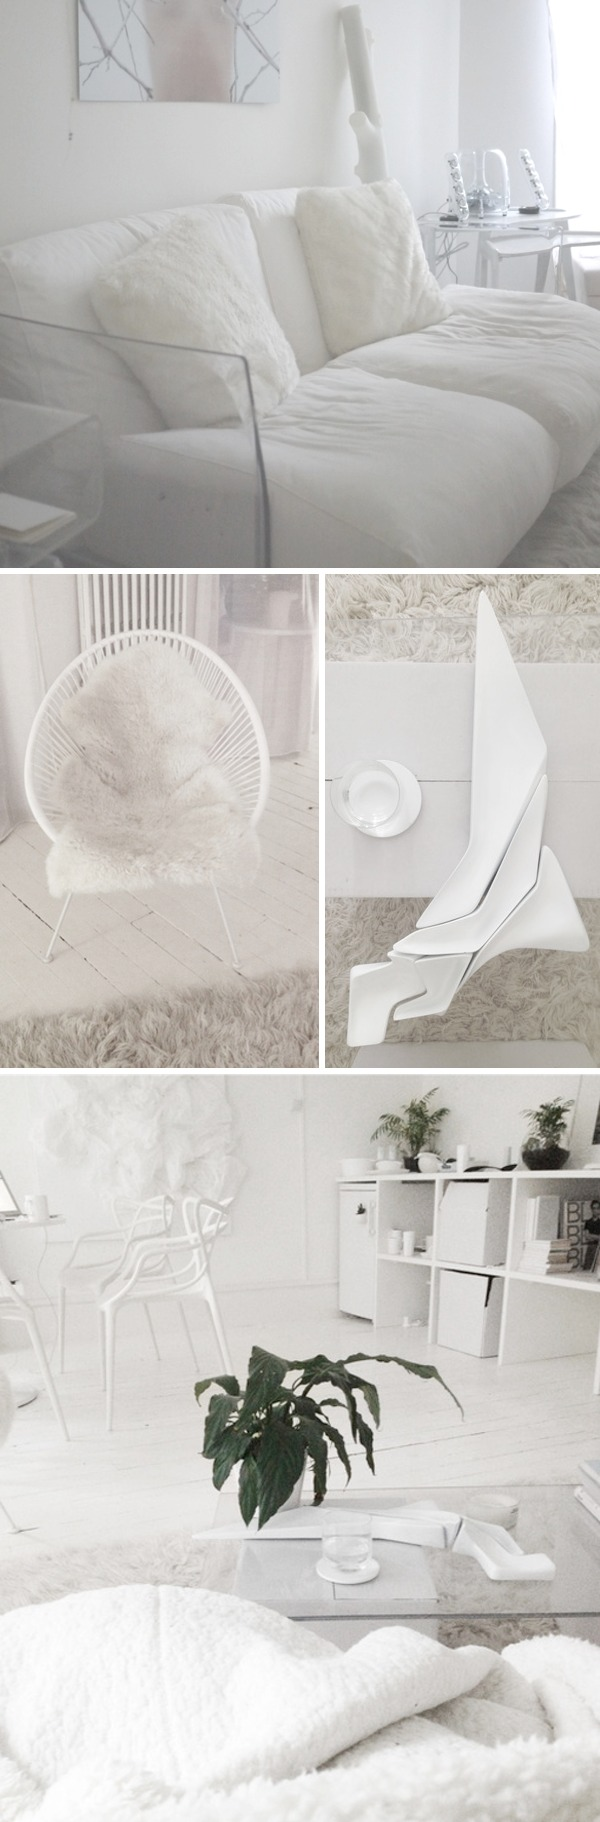 salon tout blanc great perfect petit canape places pour un studio cosy ikea un tout petit canap. Black Bedroom Furniture Sets. Home Design Ideas